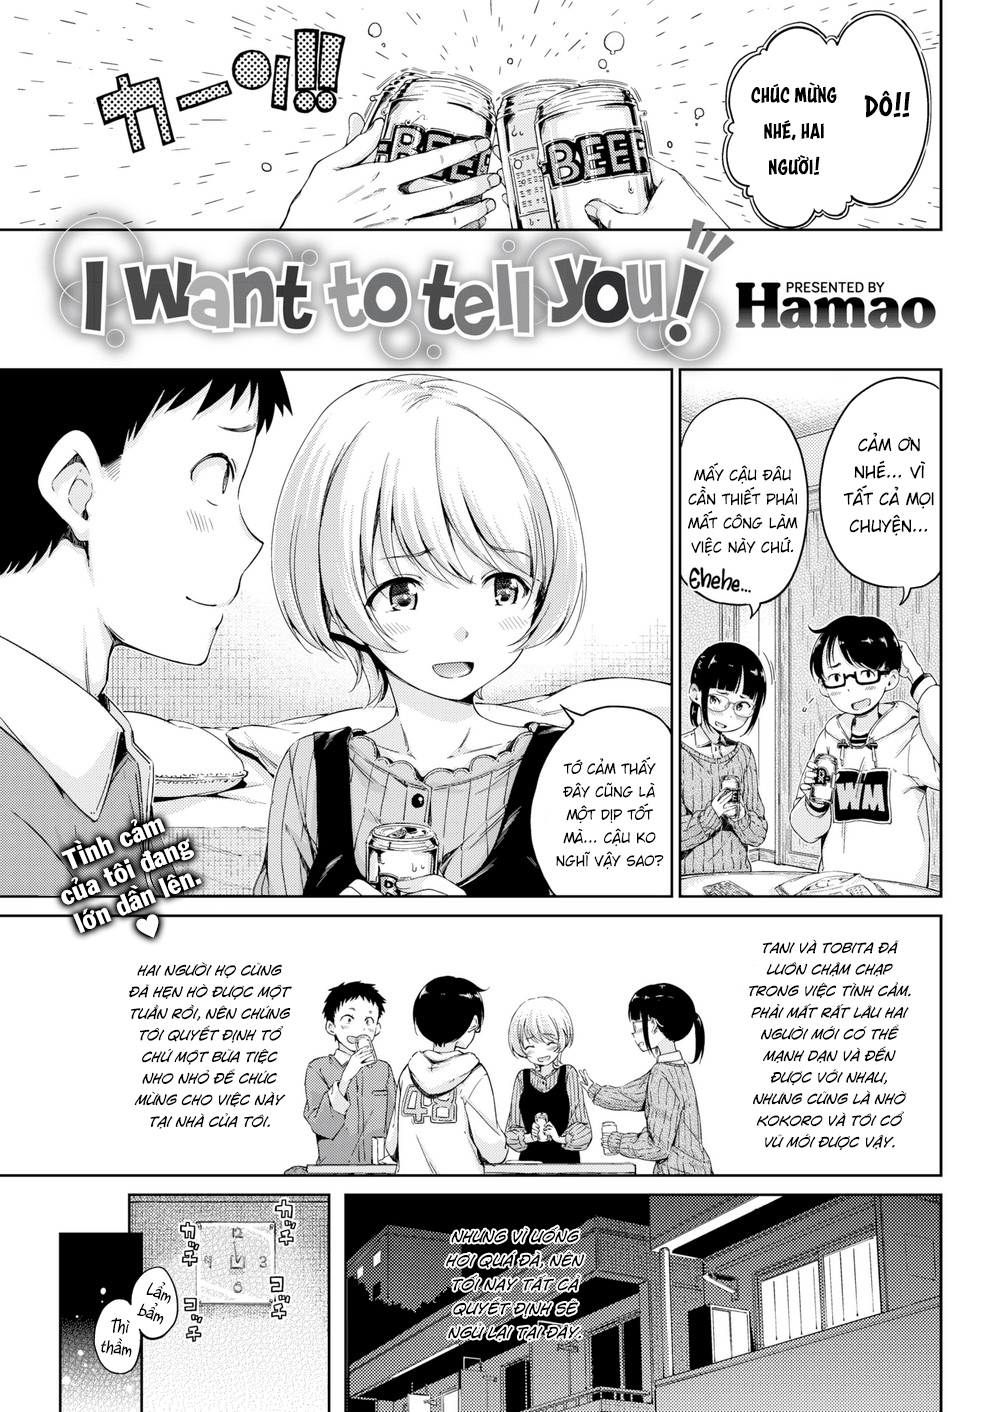 HentaiVN.net - Ảnh 1 - I Want to Tell You! - Oneshot